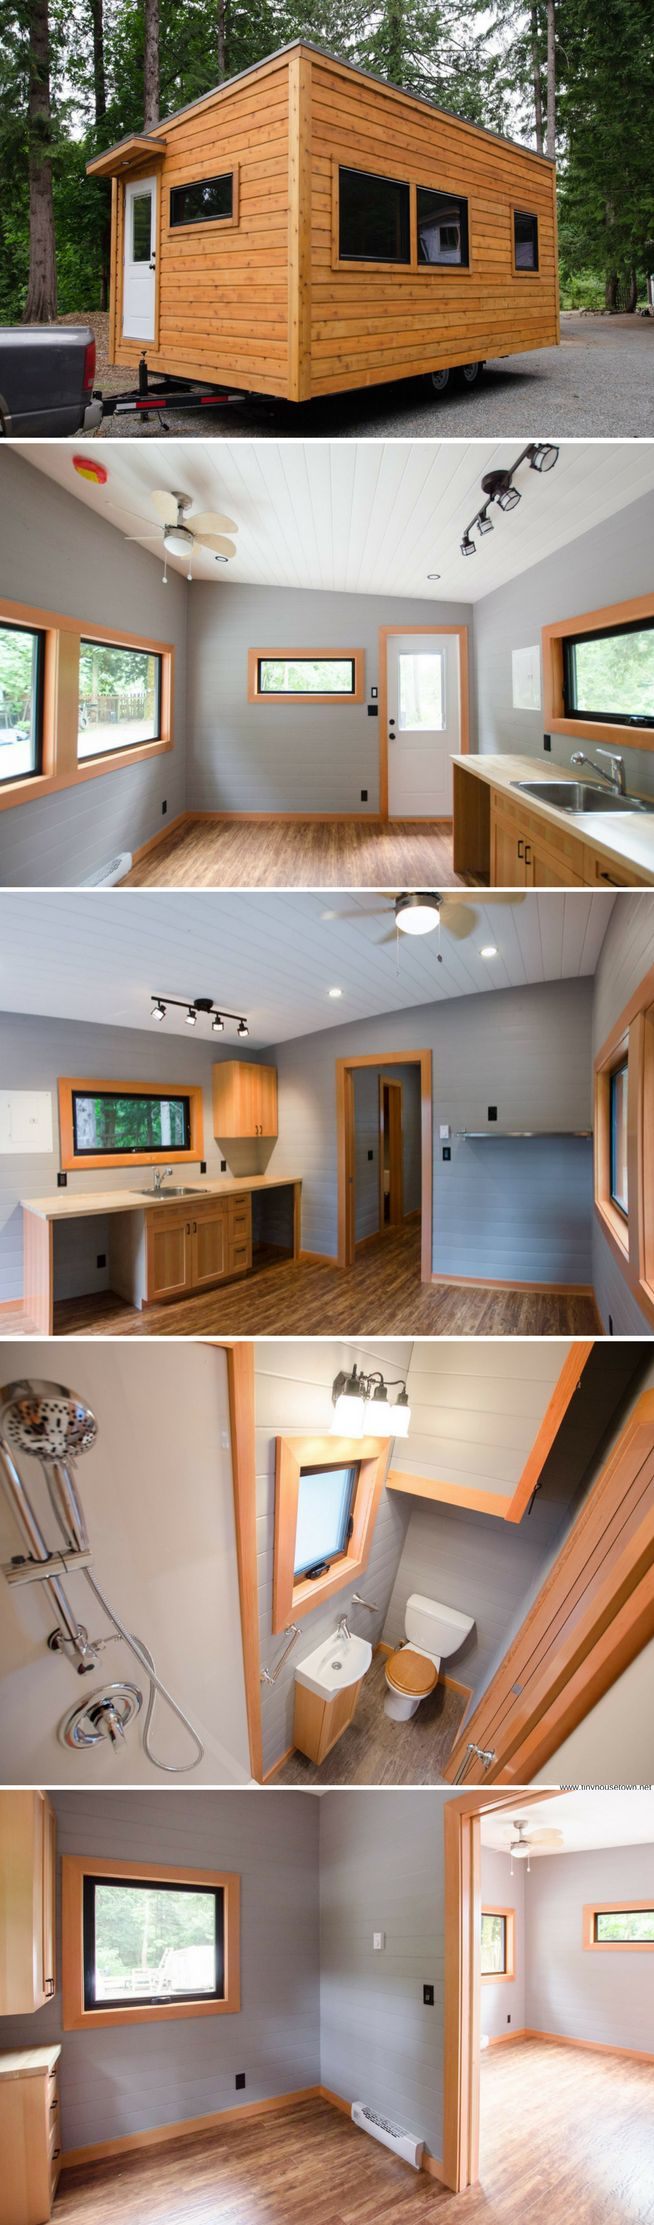 the ptarmigan a modern cabin on wheels from rewild tiny homes of nanaimo british columbia